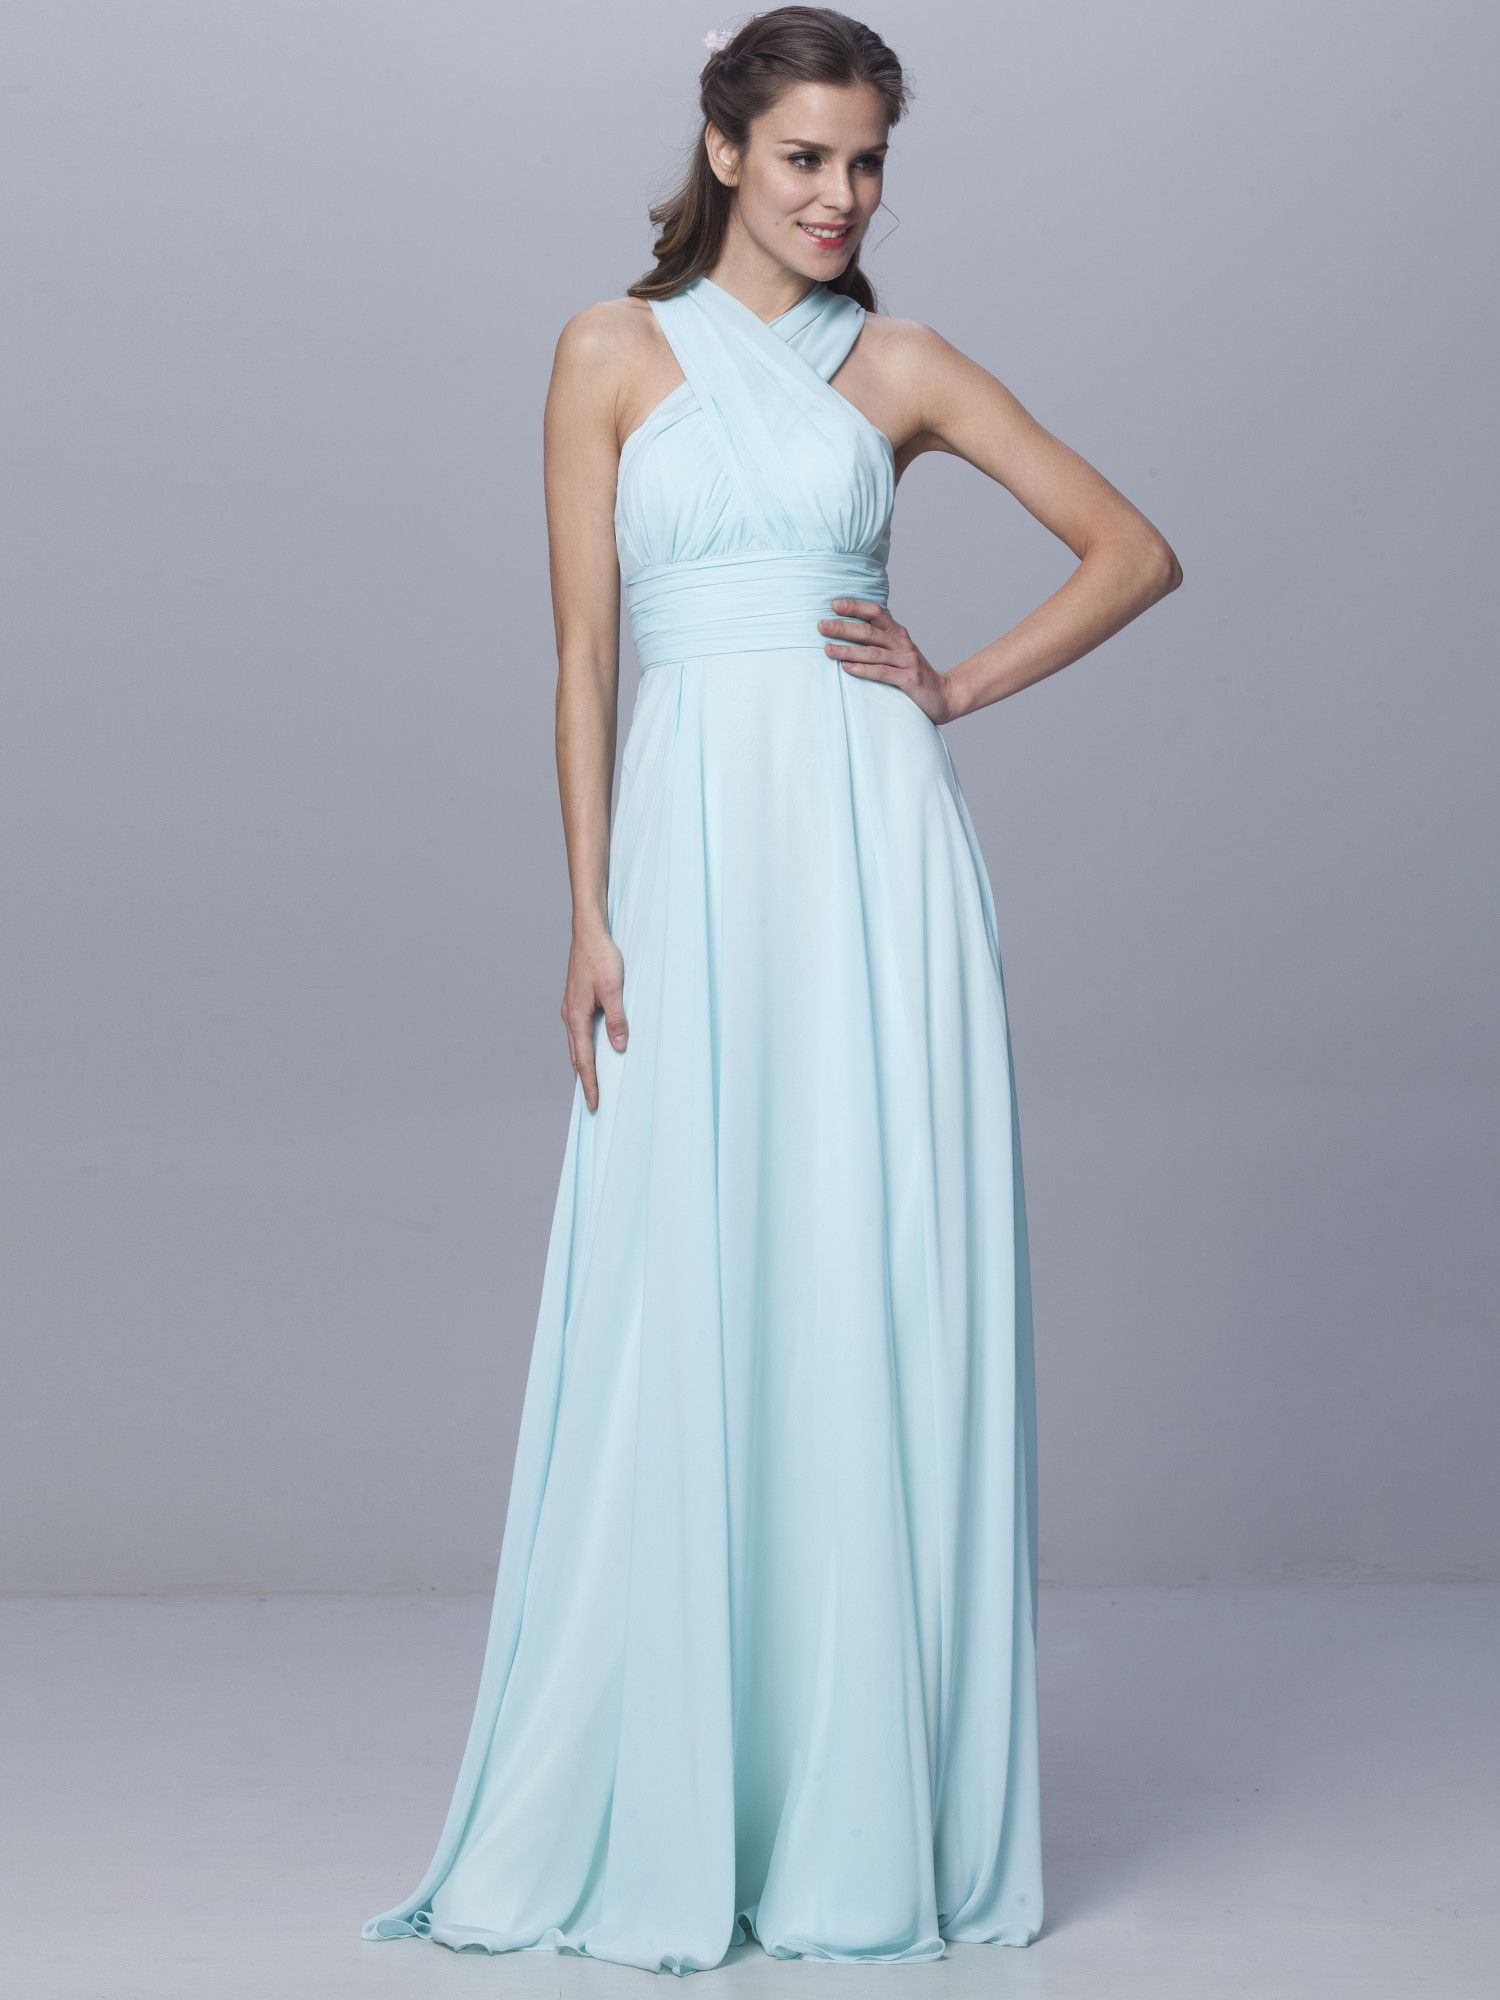 6-way Convertible Dress | Bridesmaids Dresses | Pinterest